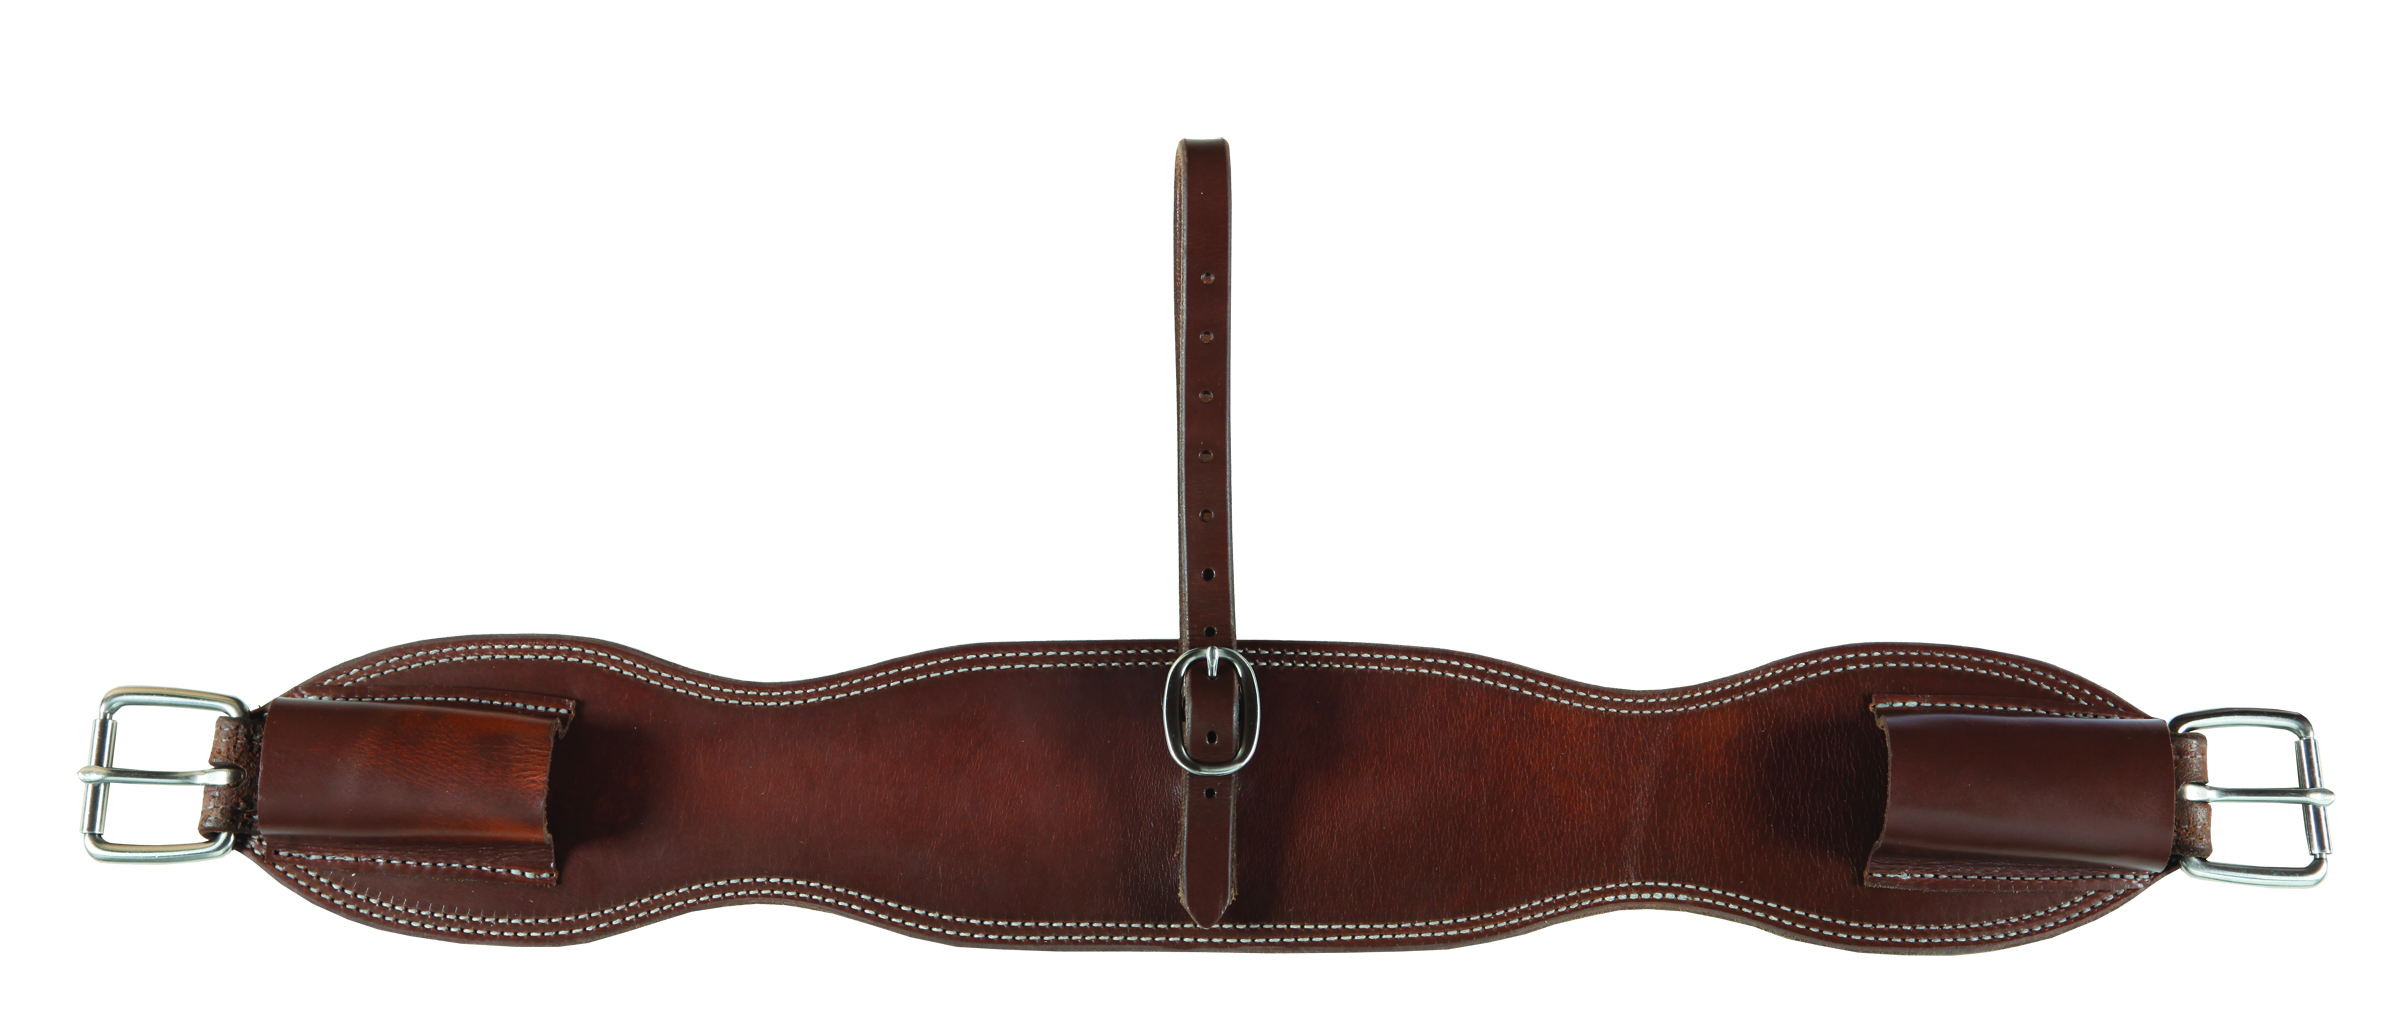 The Ranch Brand Complete Cinch by Berlin Leather Company